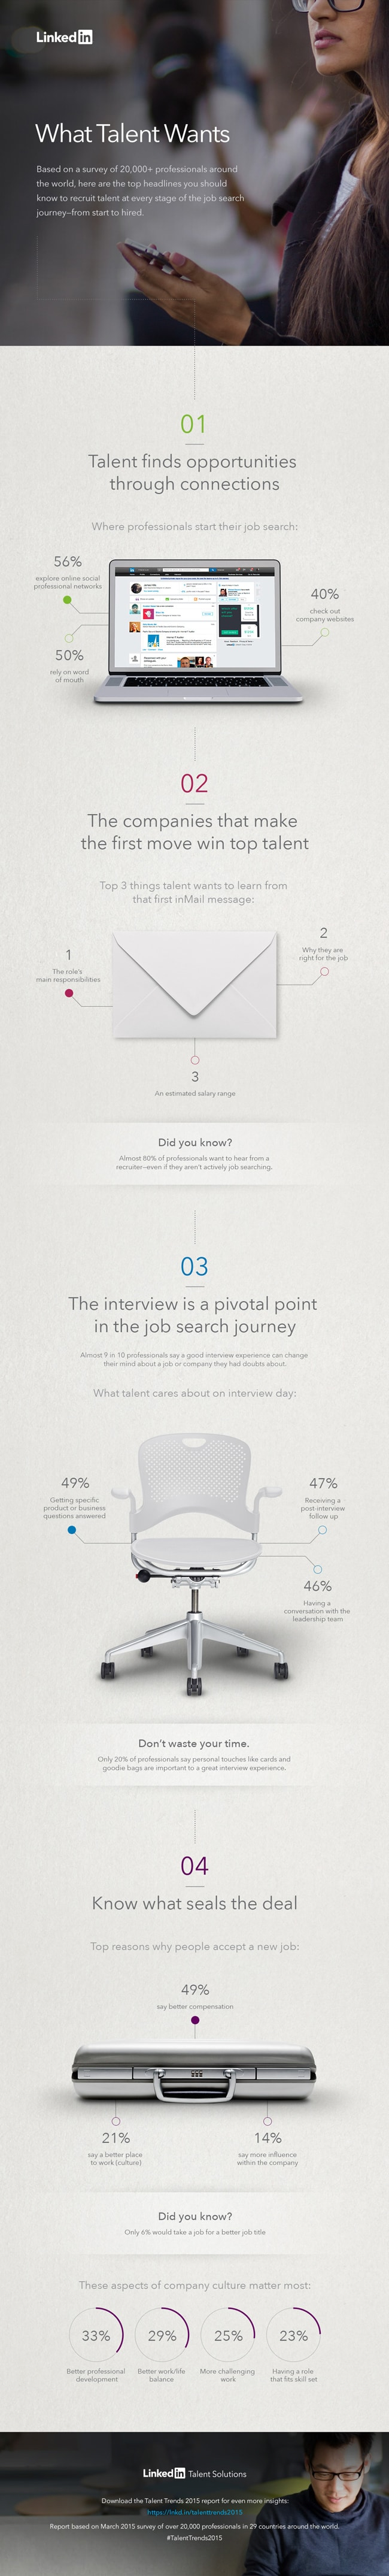 TalentWants2015infographic